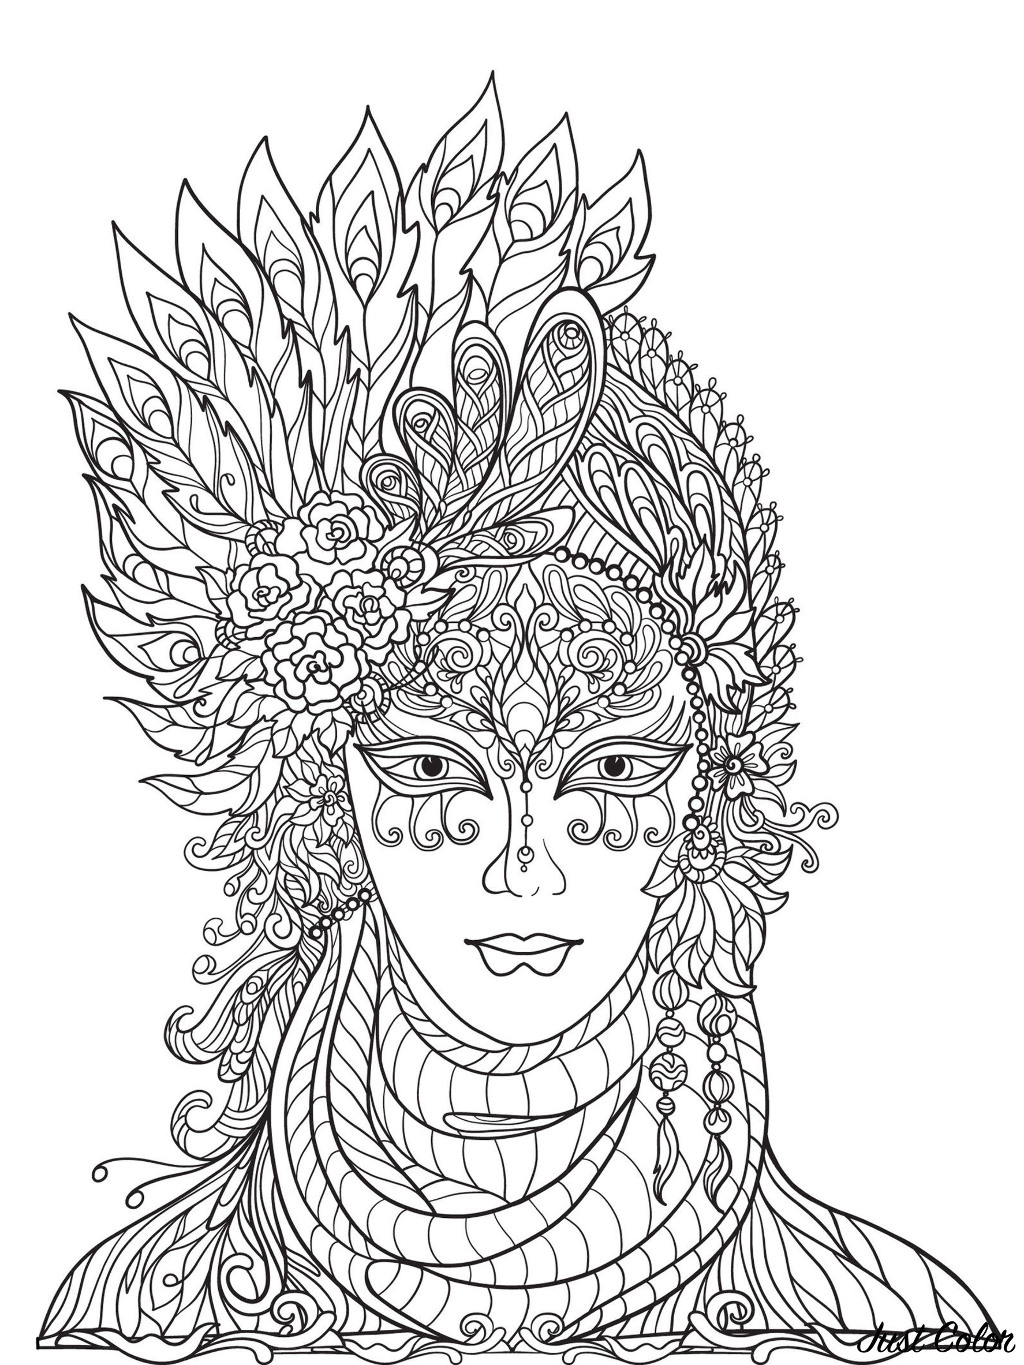 Simple Carnival coloring page for children